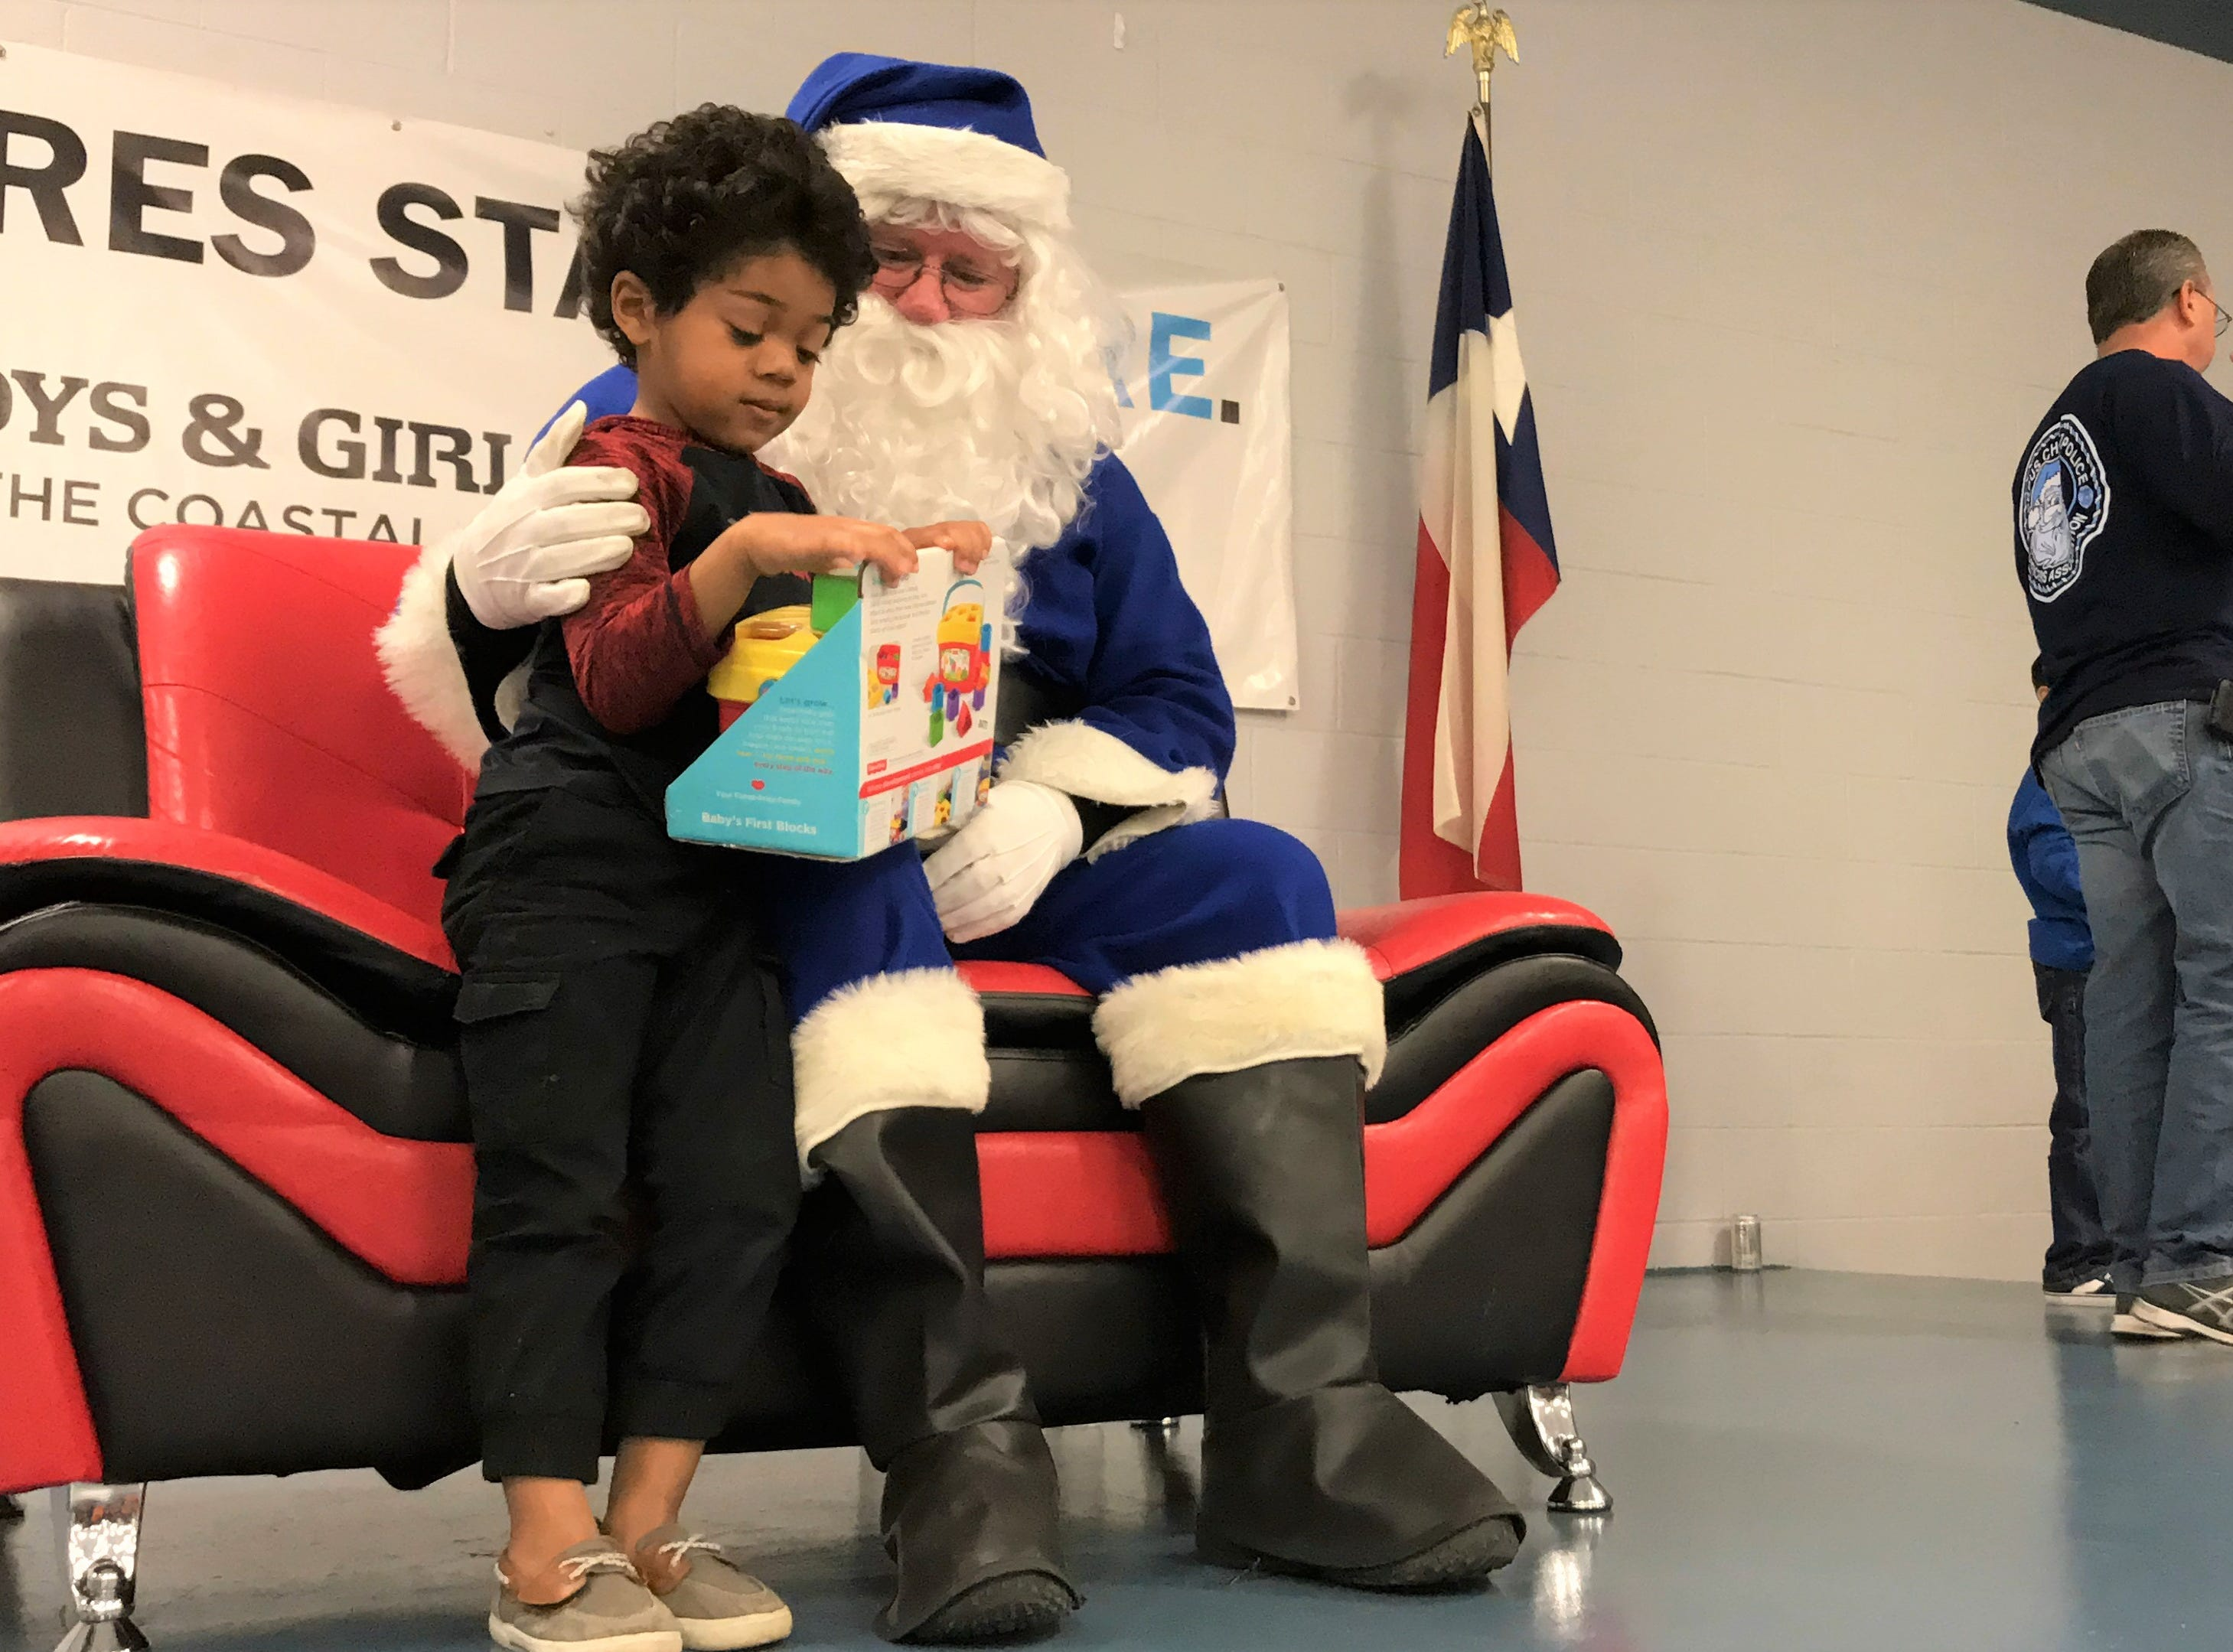 Blue Santa gives toys to children at the Boys and Girls Club of the Coastal Bend on Saturday, Dec. 15, 2018.